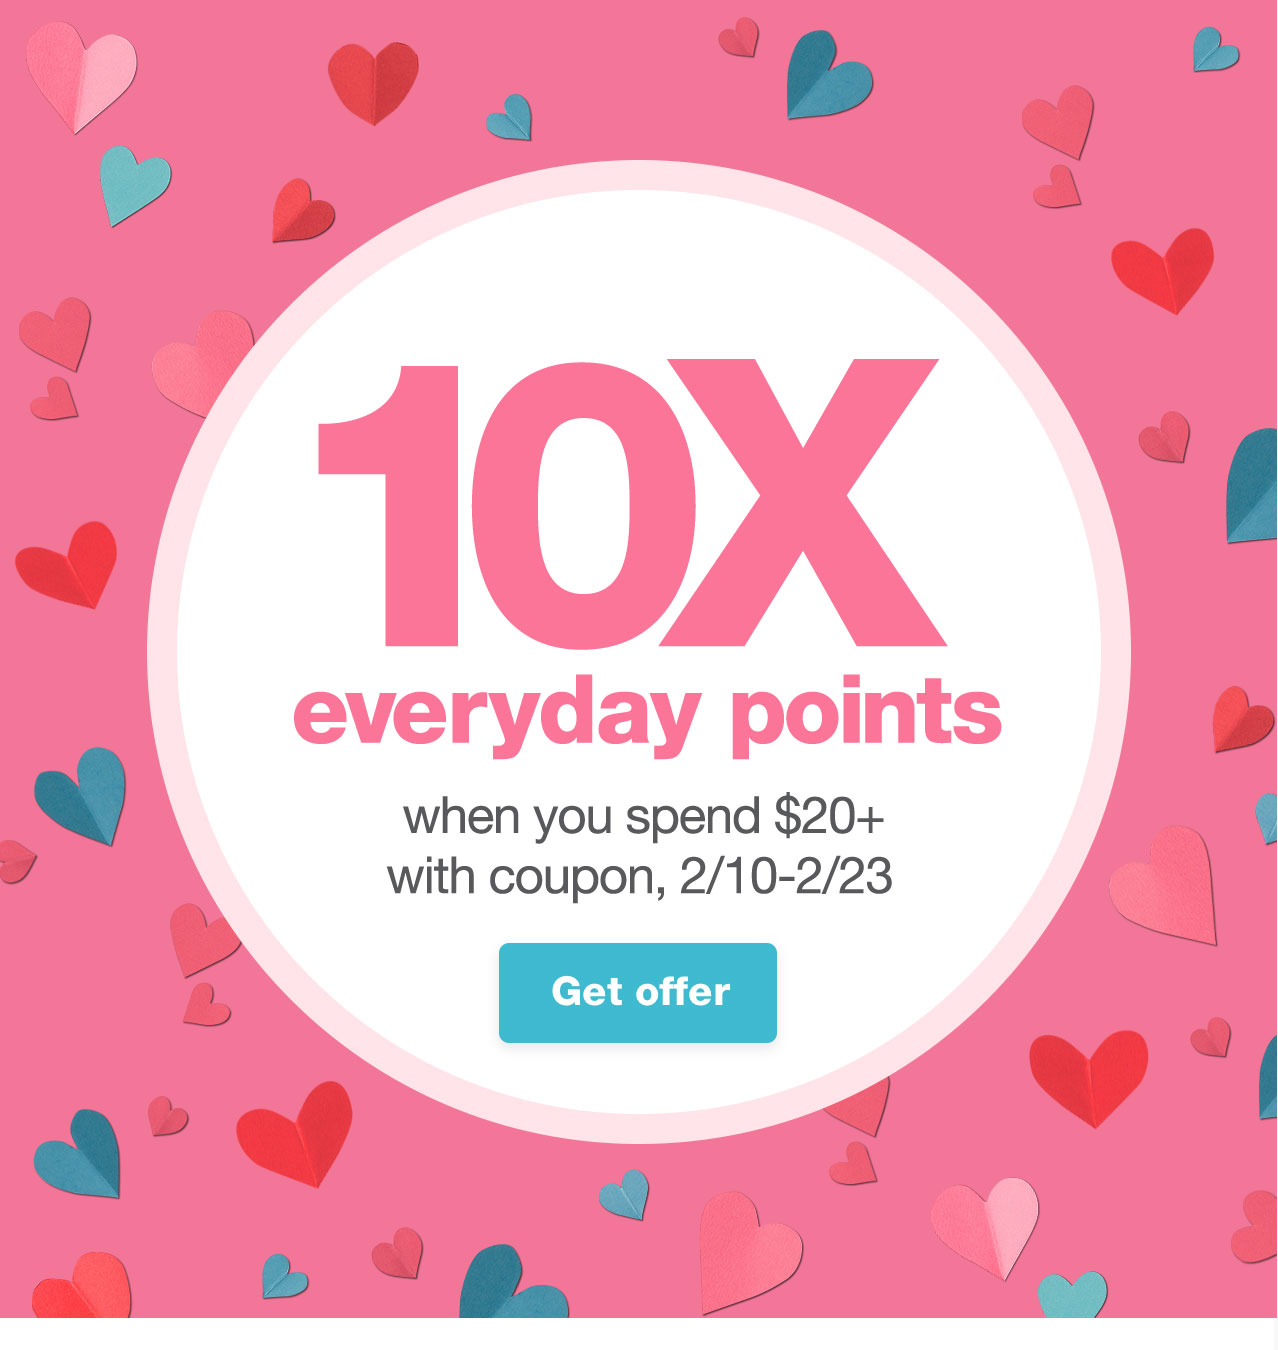 10X everyday points when you spend $20+ with coupon, 2/10-2/23. Get offer